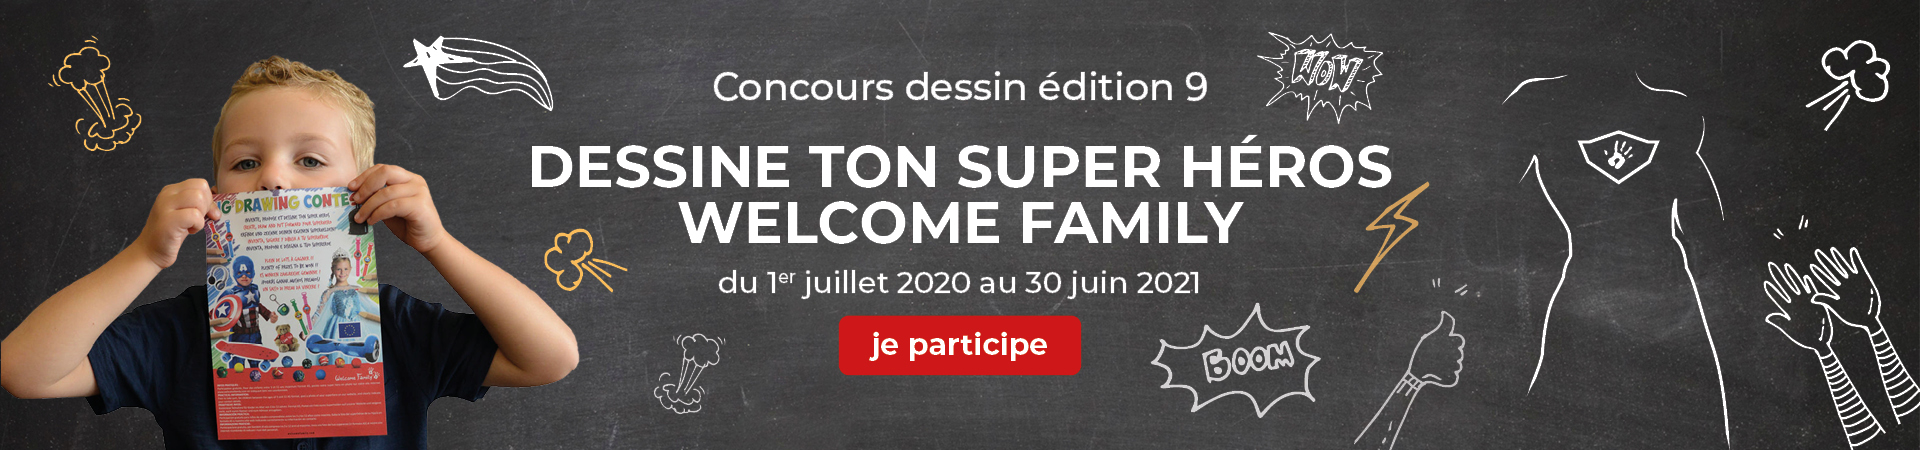 Concours dessin Welcome Family édition 9